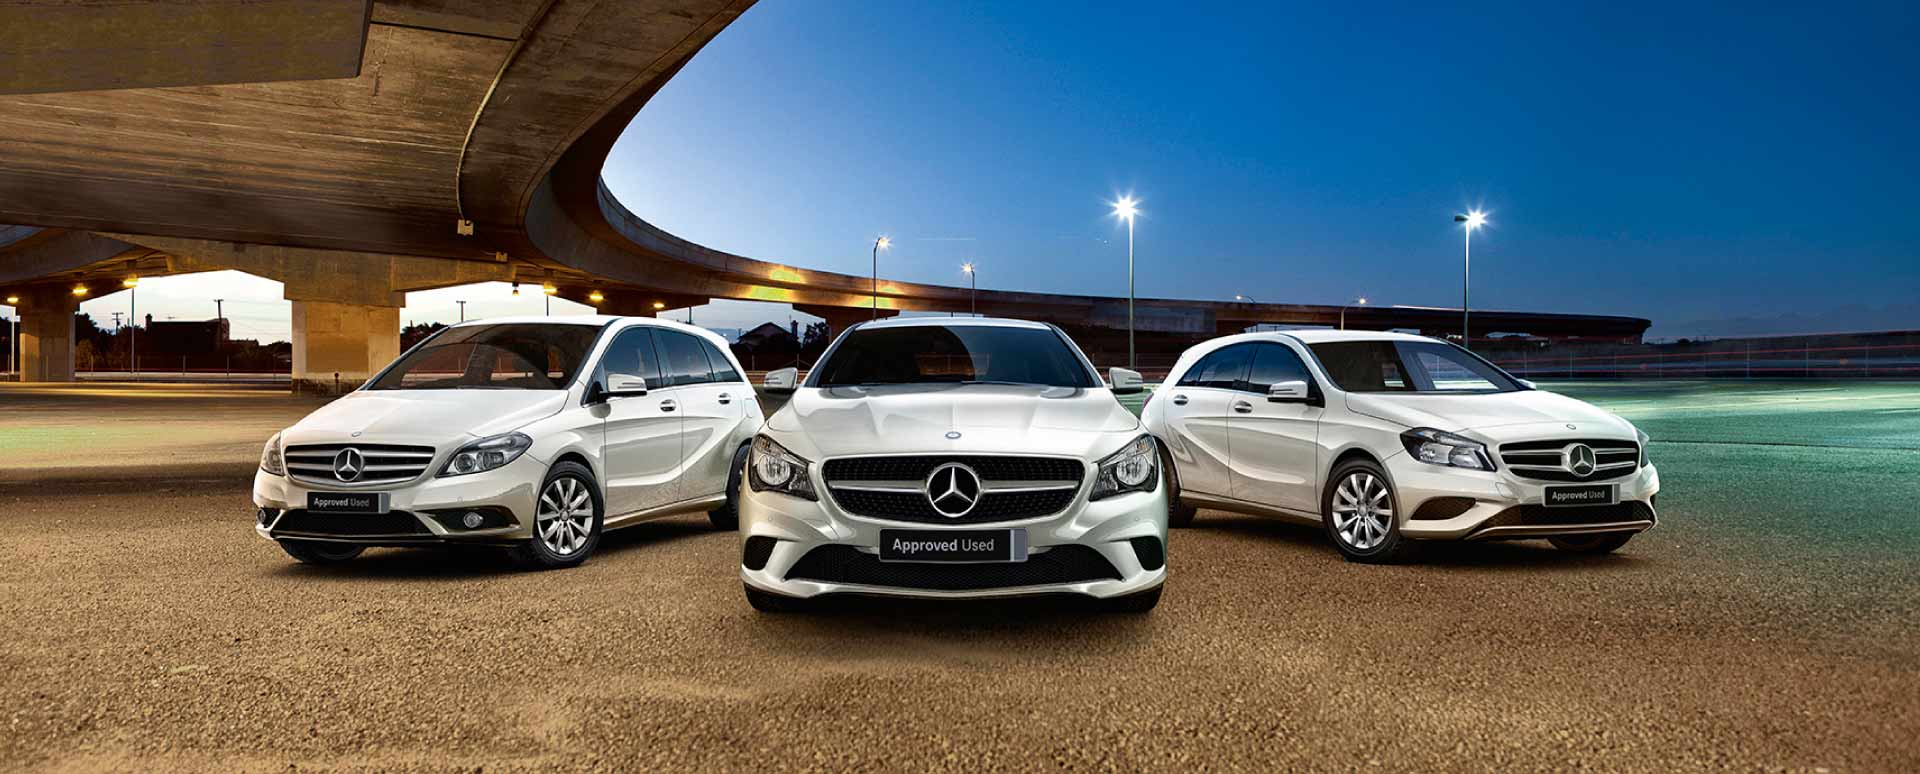 Mercedes-Benz Approved Used Cars